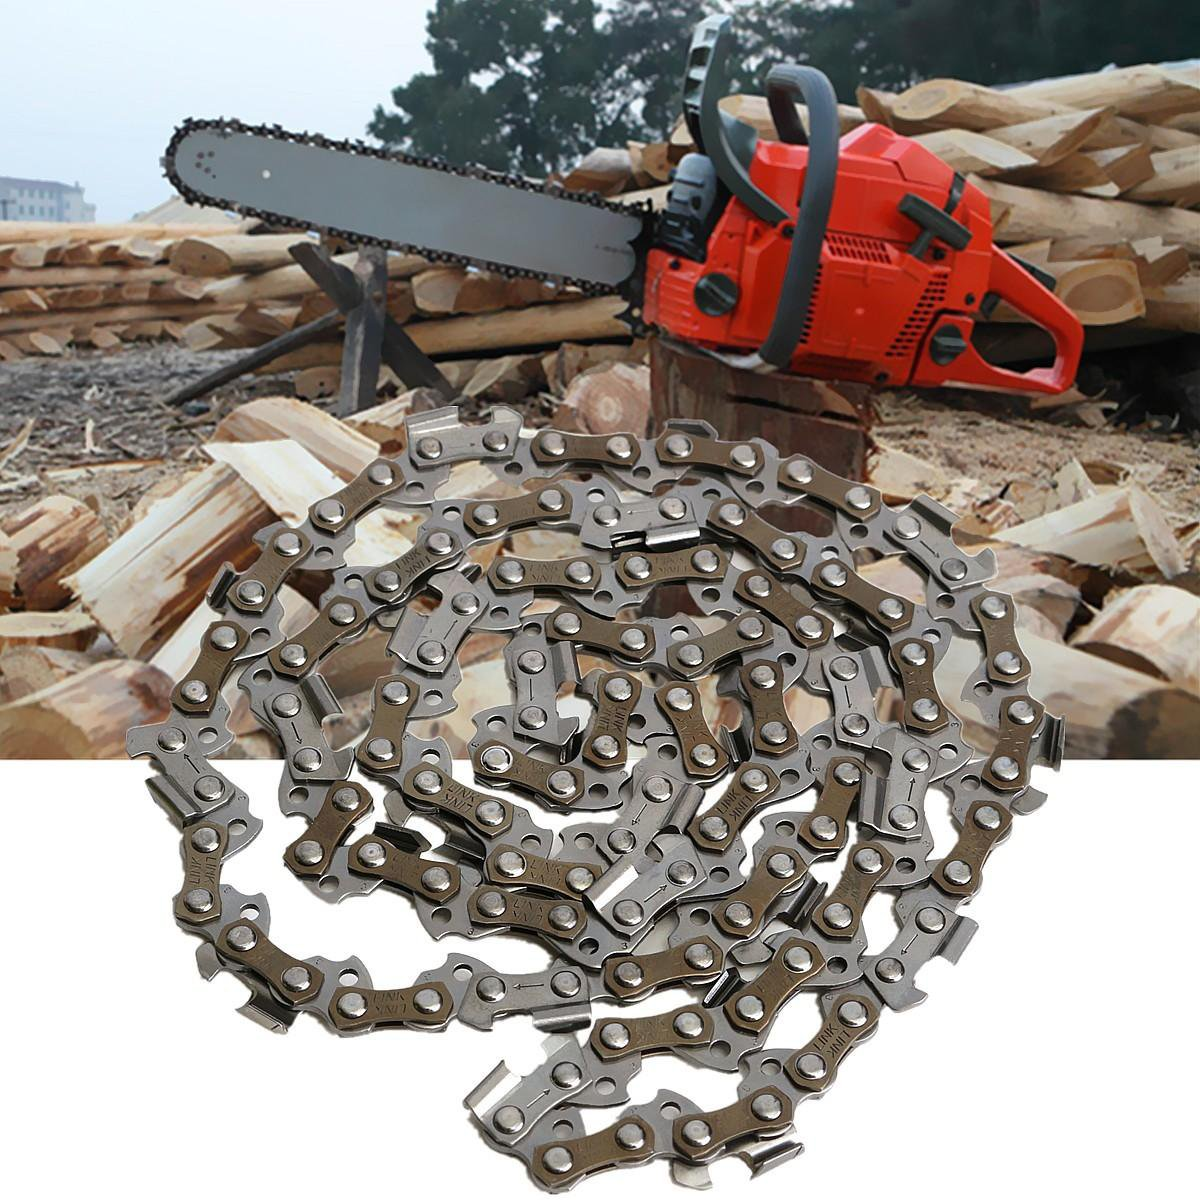 57 Drive Link 3/8 Inch Ripping Saw Chain Standard Sequence for 16 Inch Saw Chain Guide